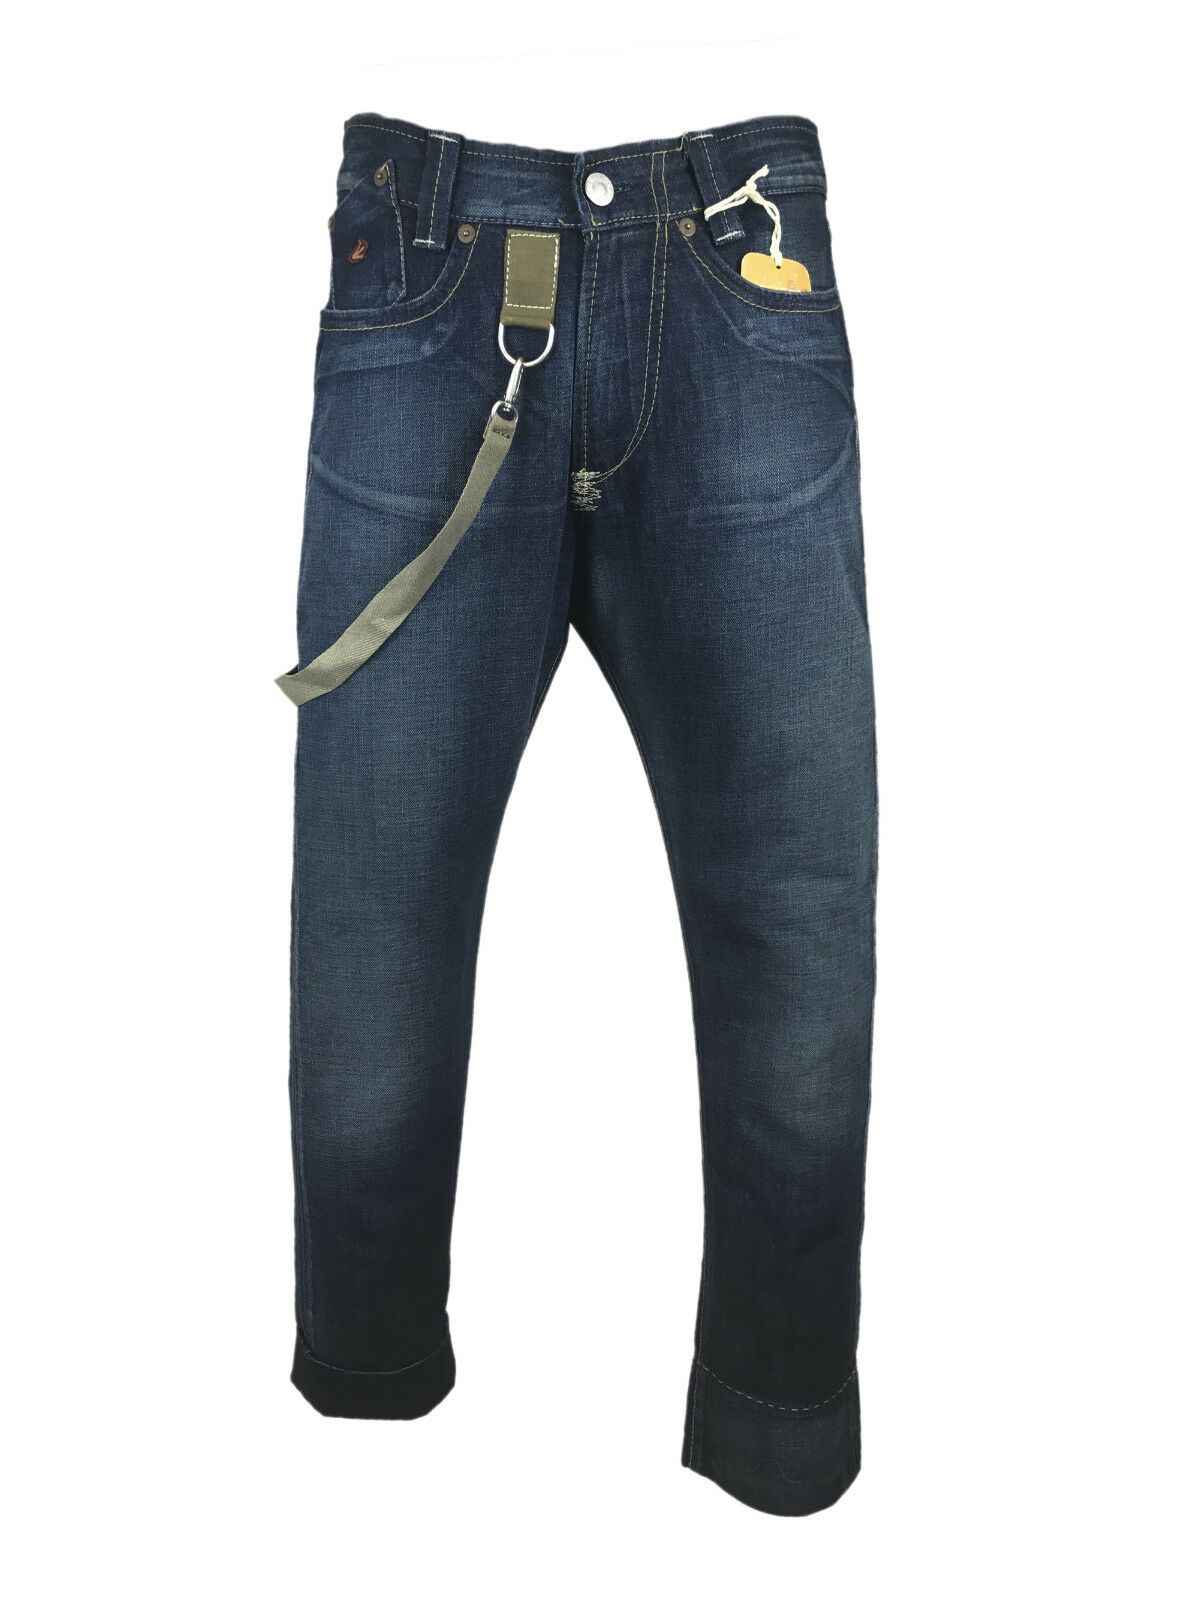 Energie Mescal Trousers Vintage Jeans with Military Style Details